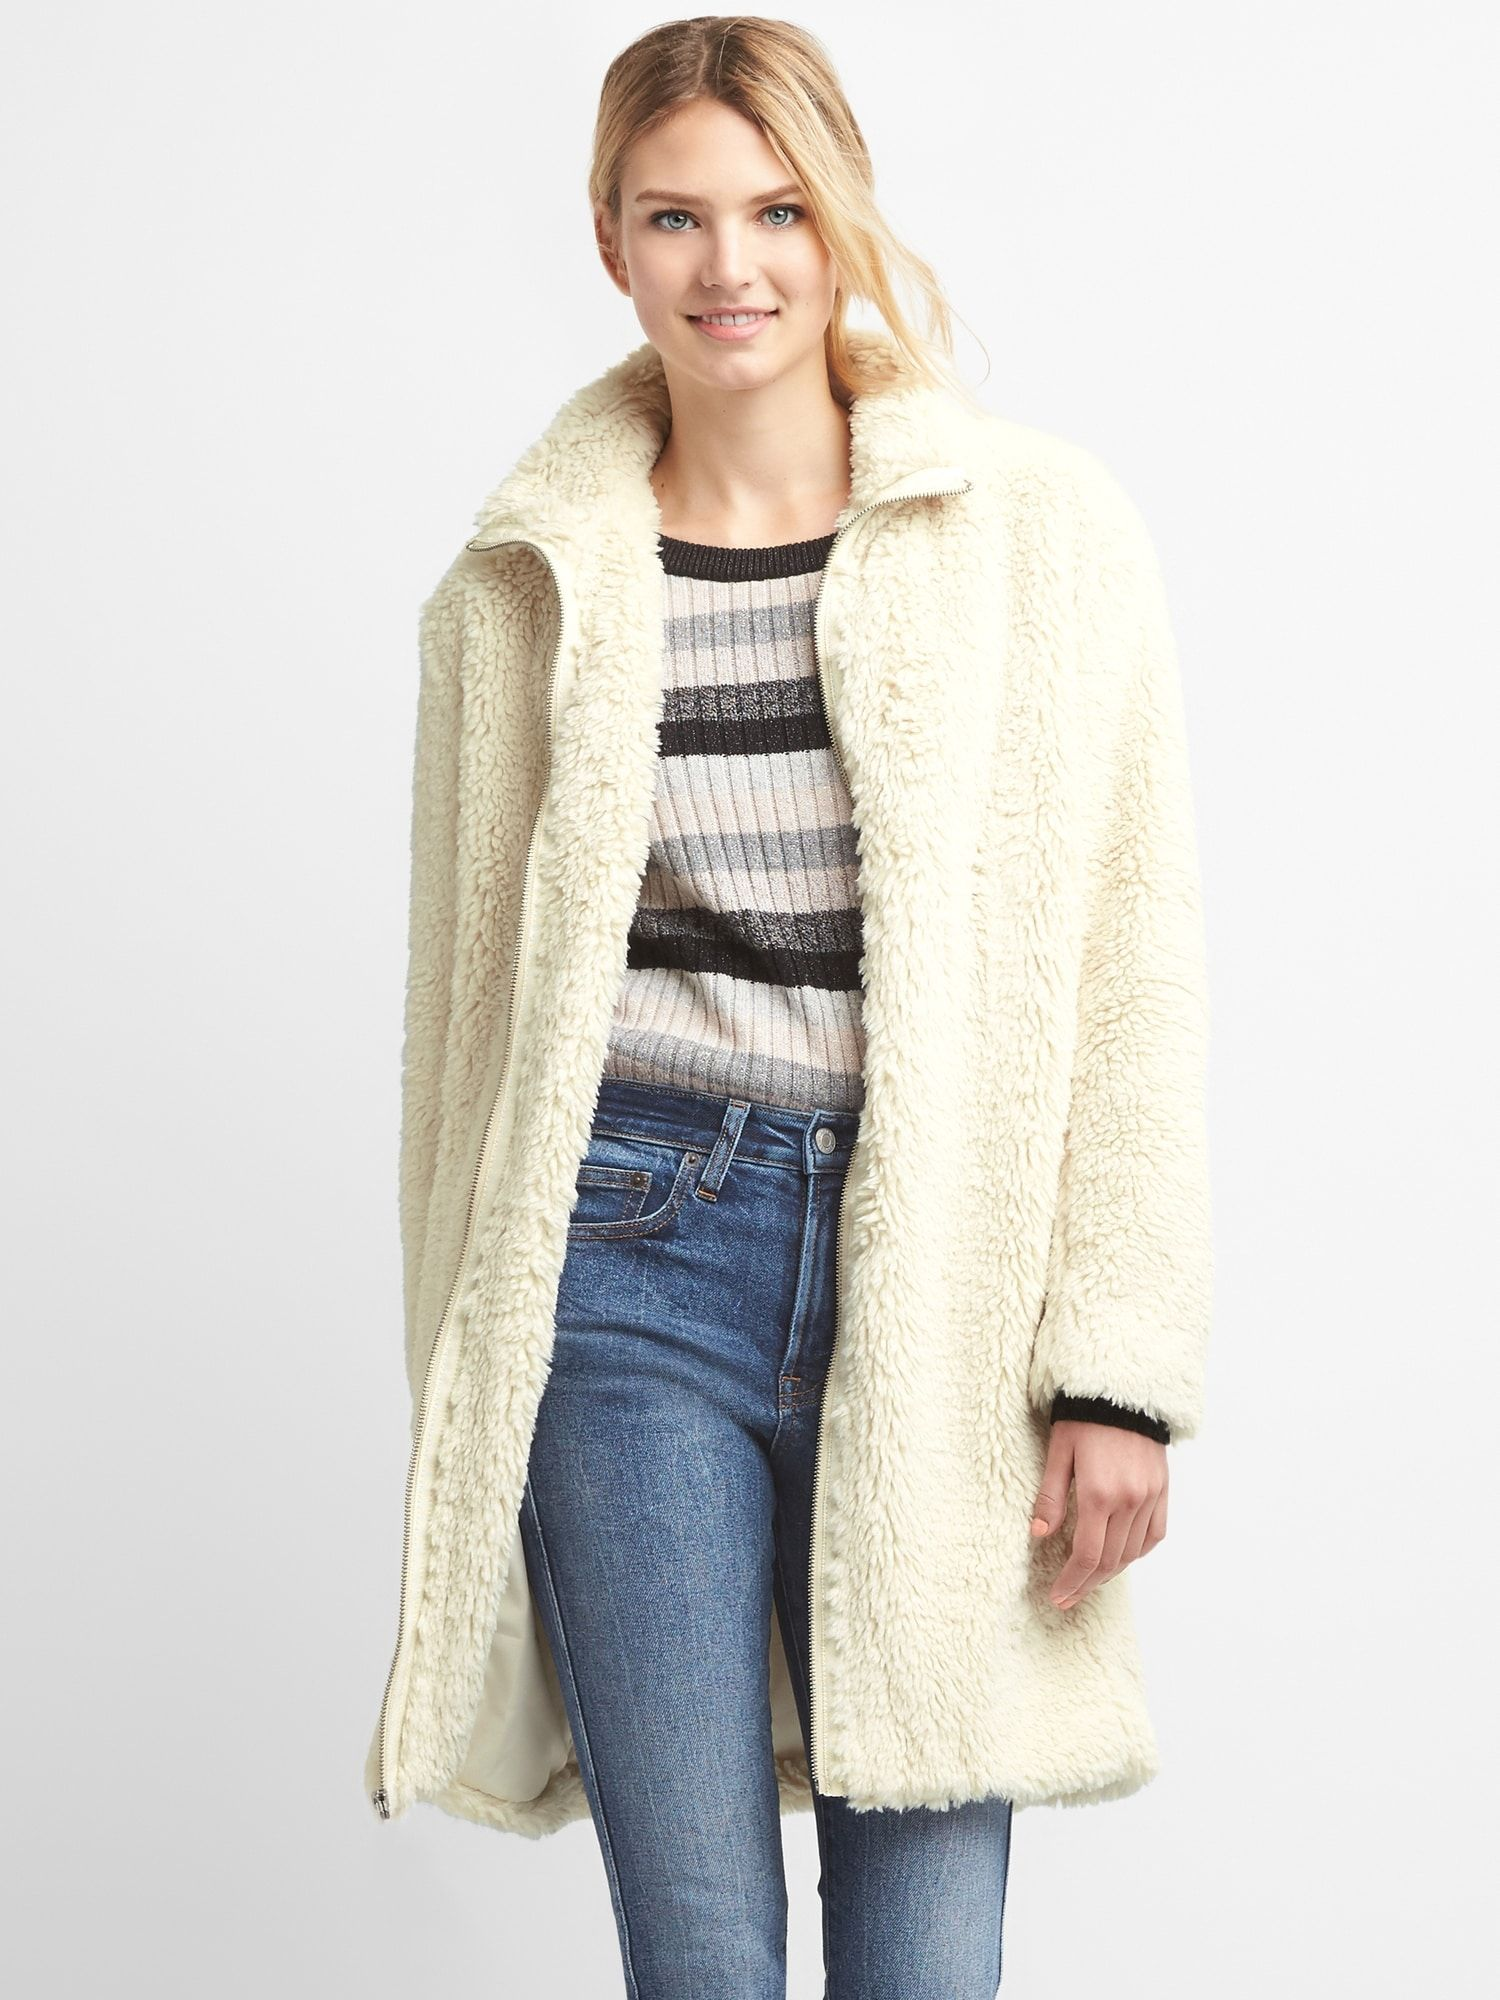 Sherpa Coat Gap 168 Style That Inspires Coat Jackets